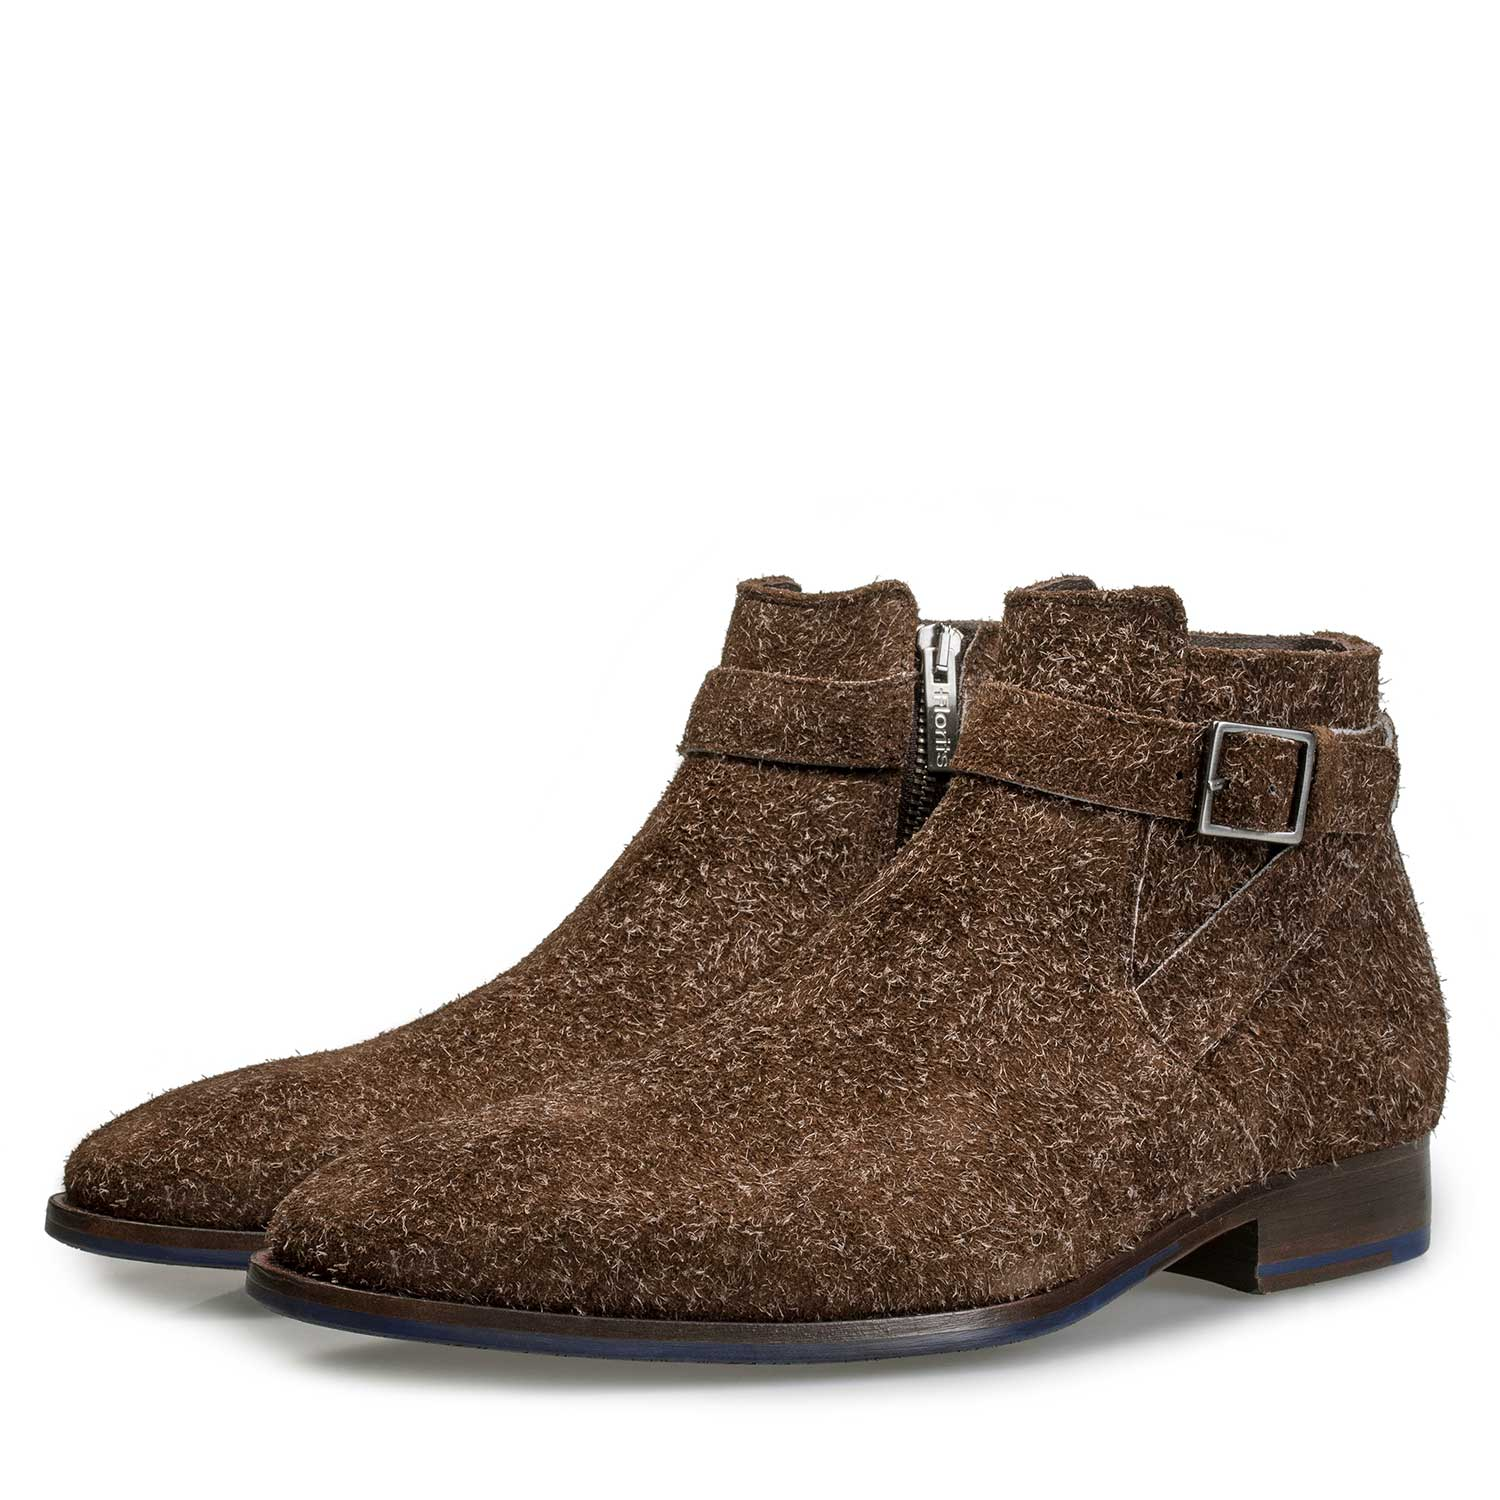 10422/01 - Brown rough suede leather zip ankle boot